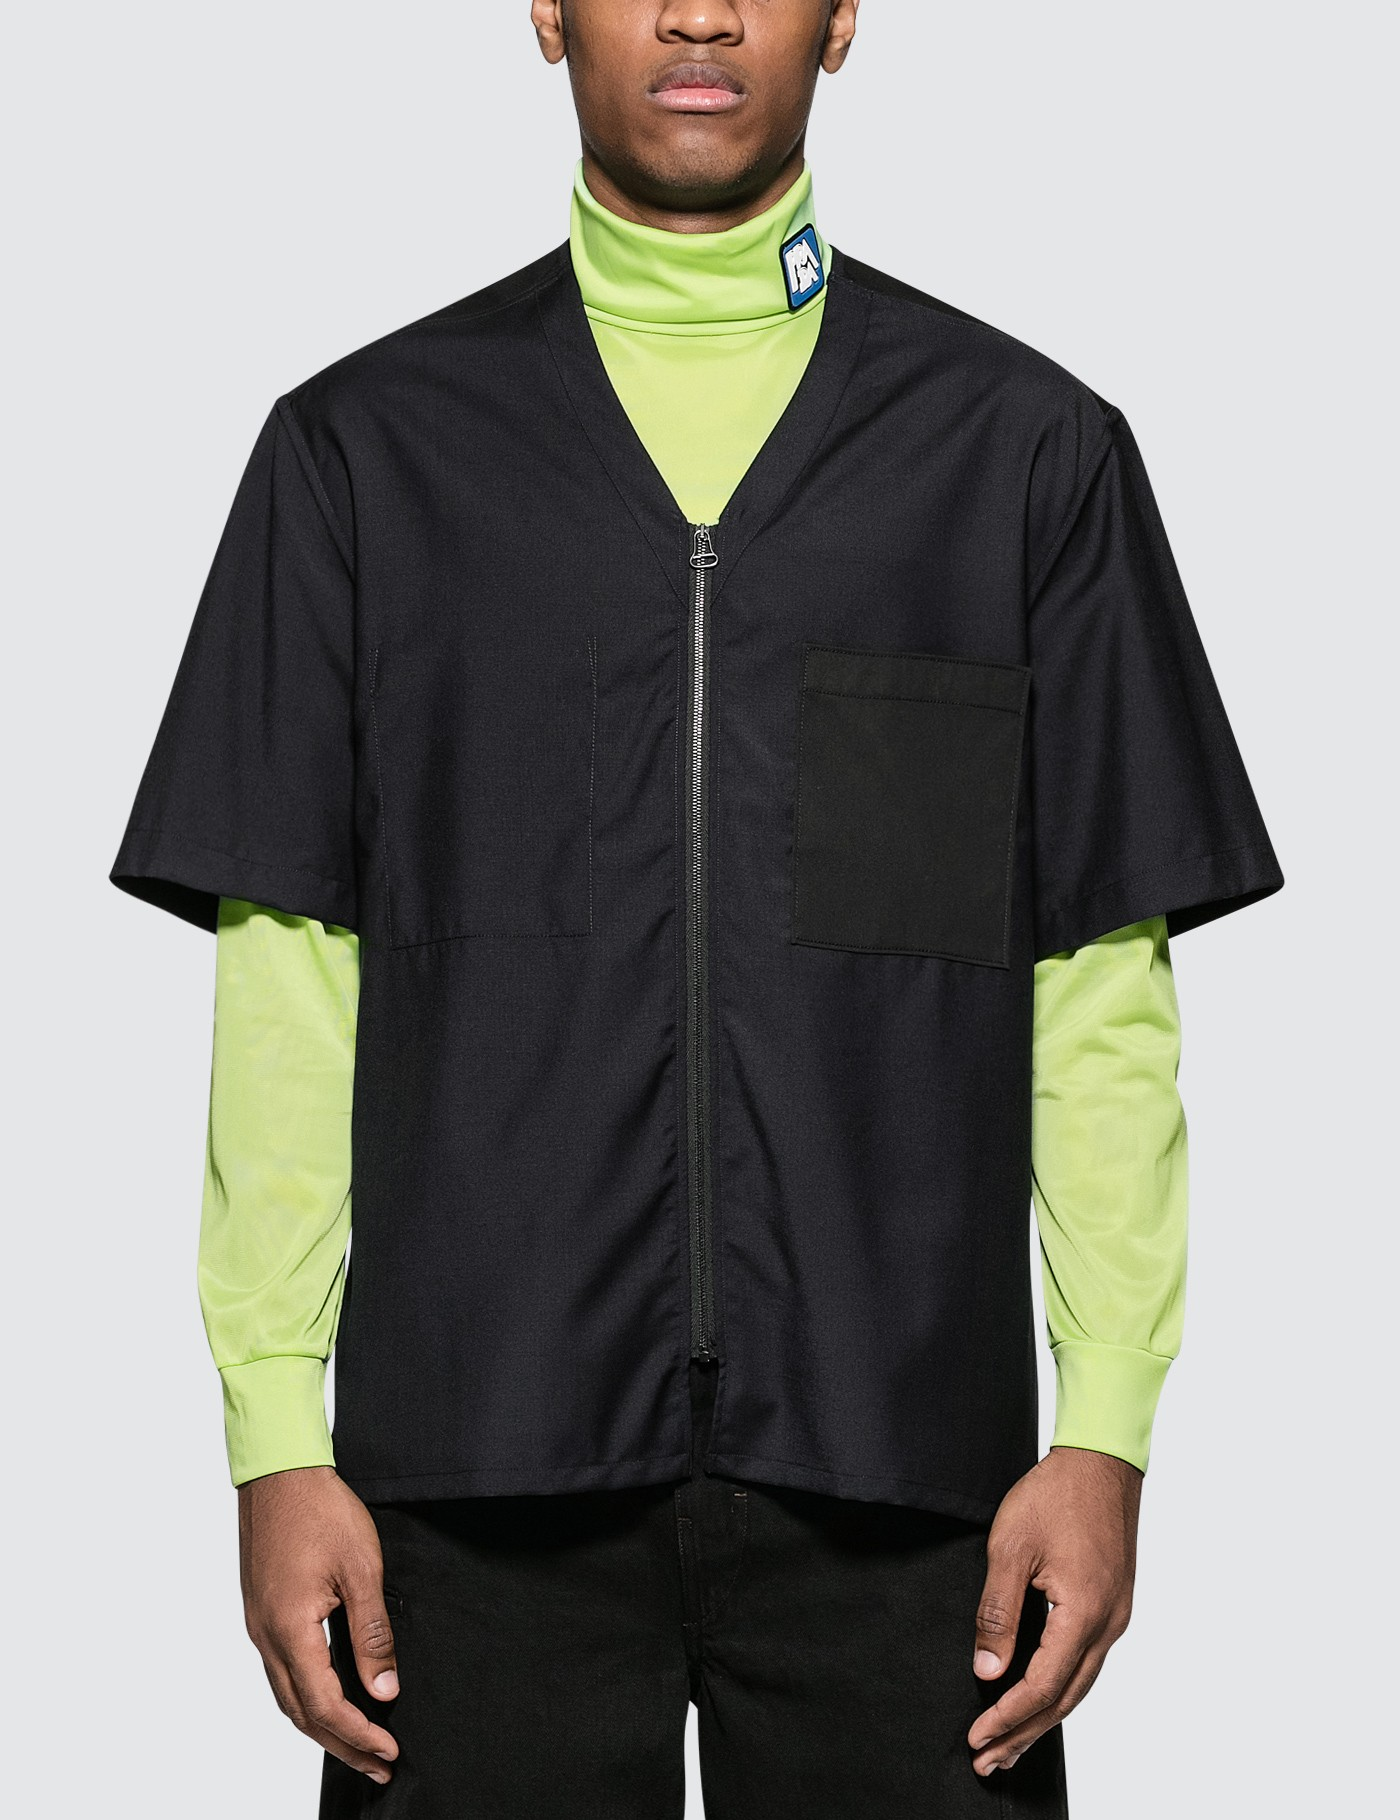 Zipped Shirt with Collar Contrasted Details